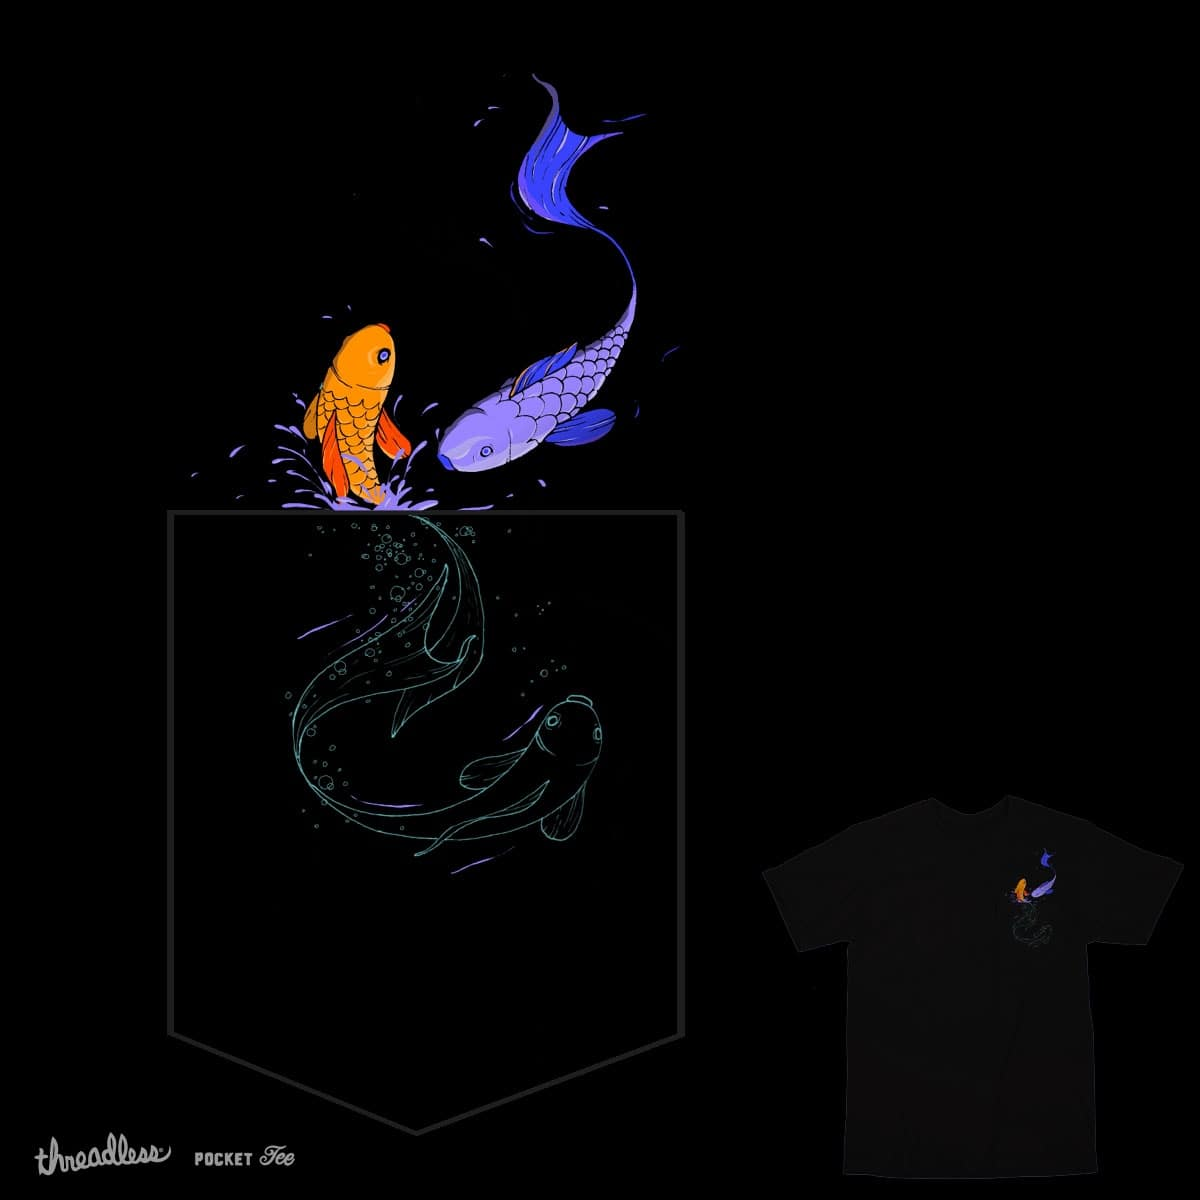 Pocket Fish by Maharashiri on Threadless